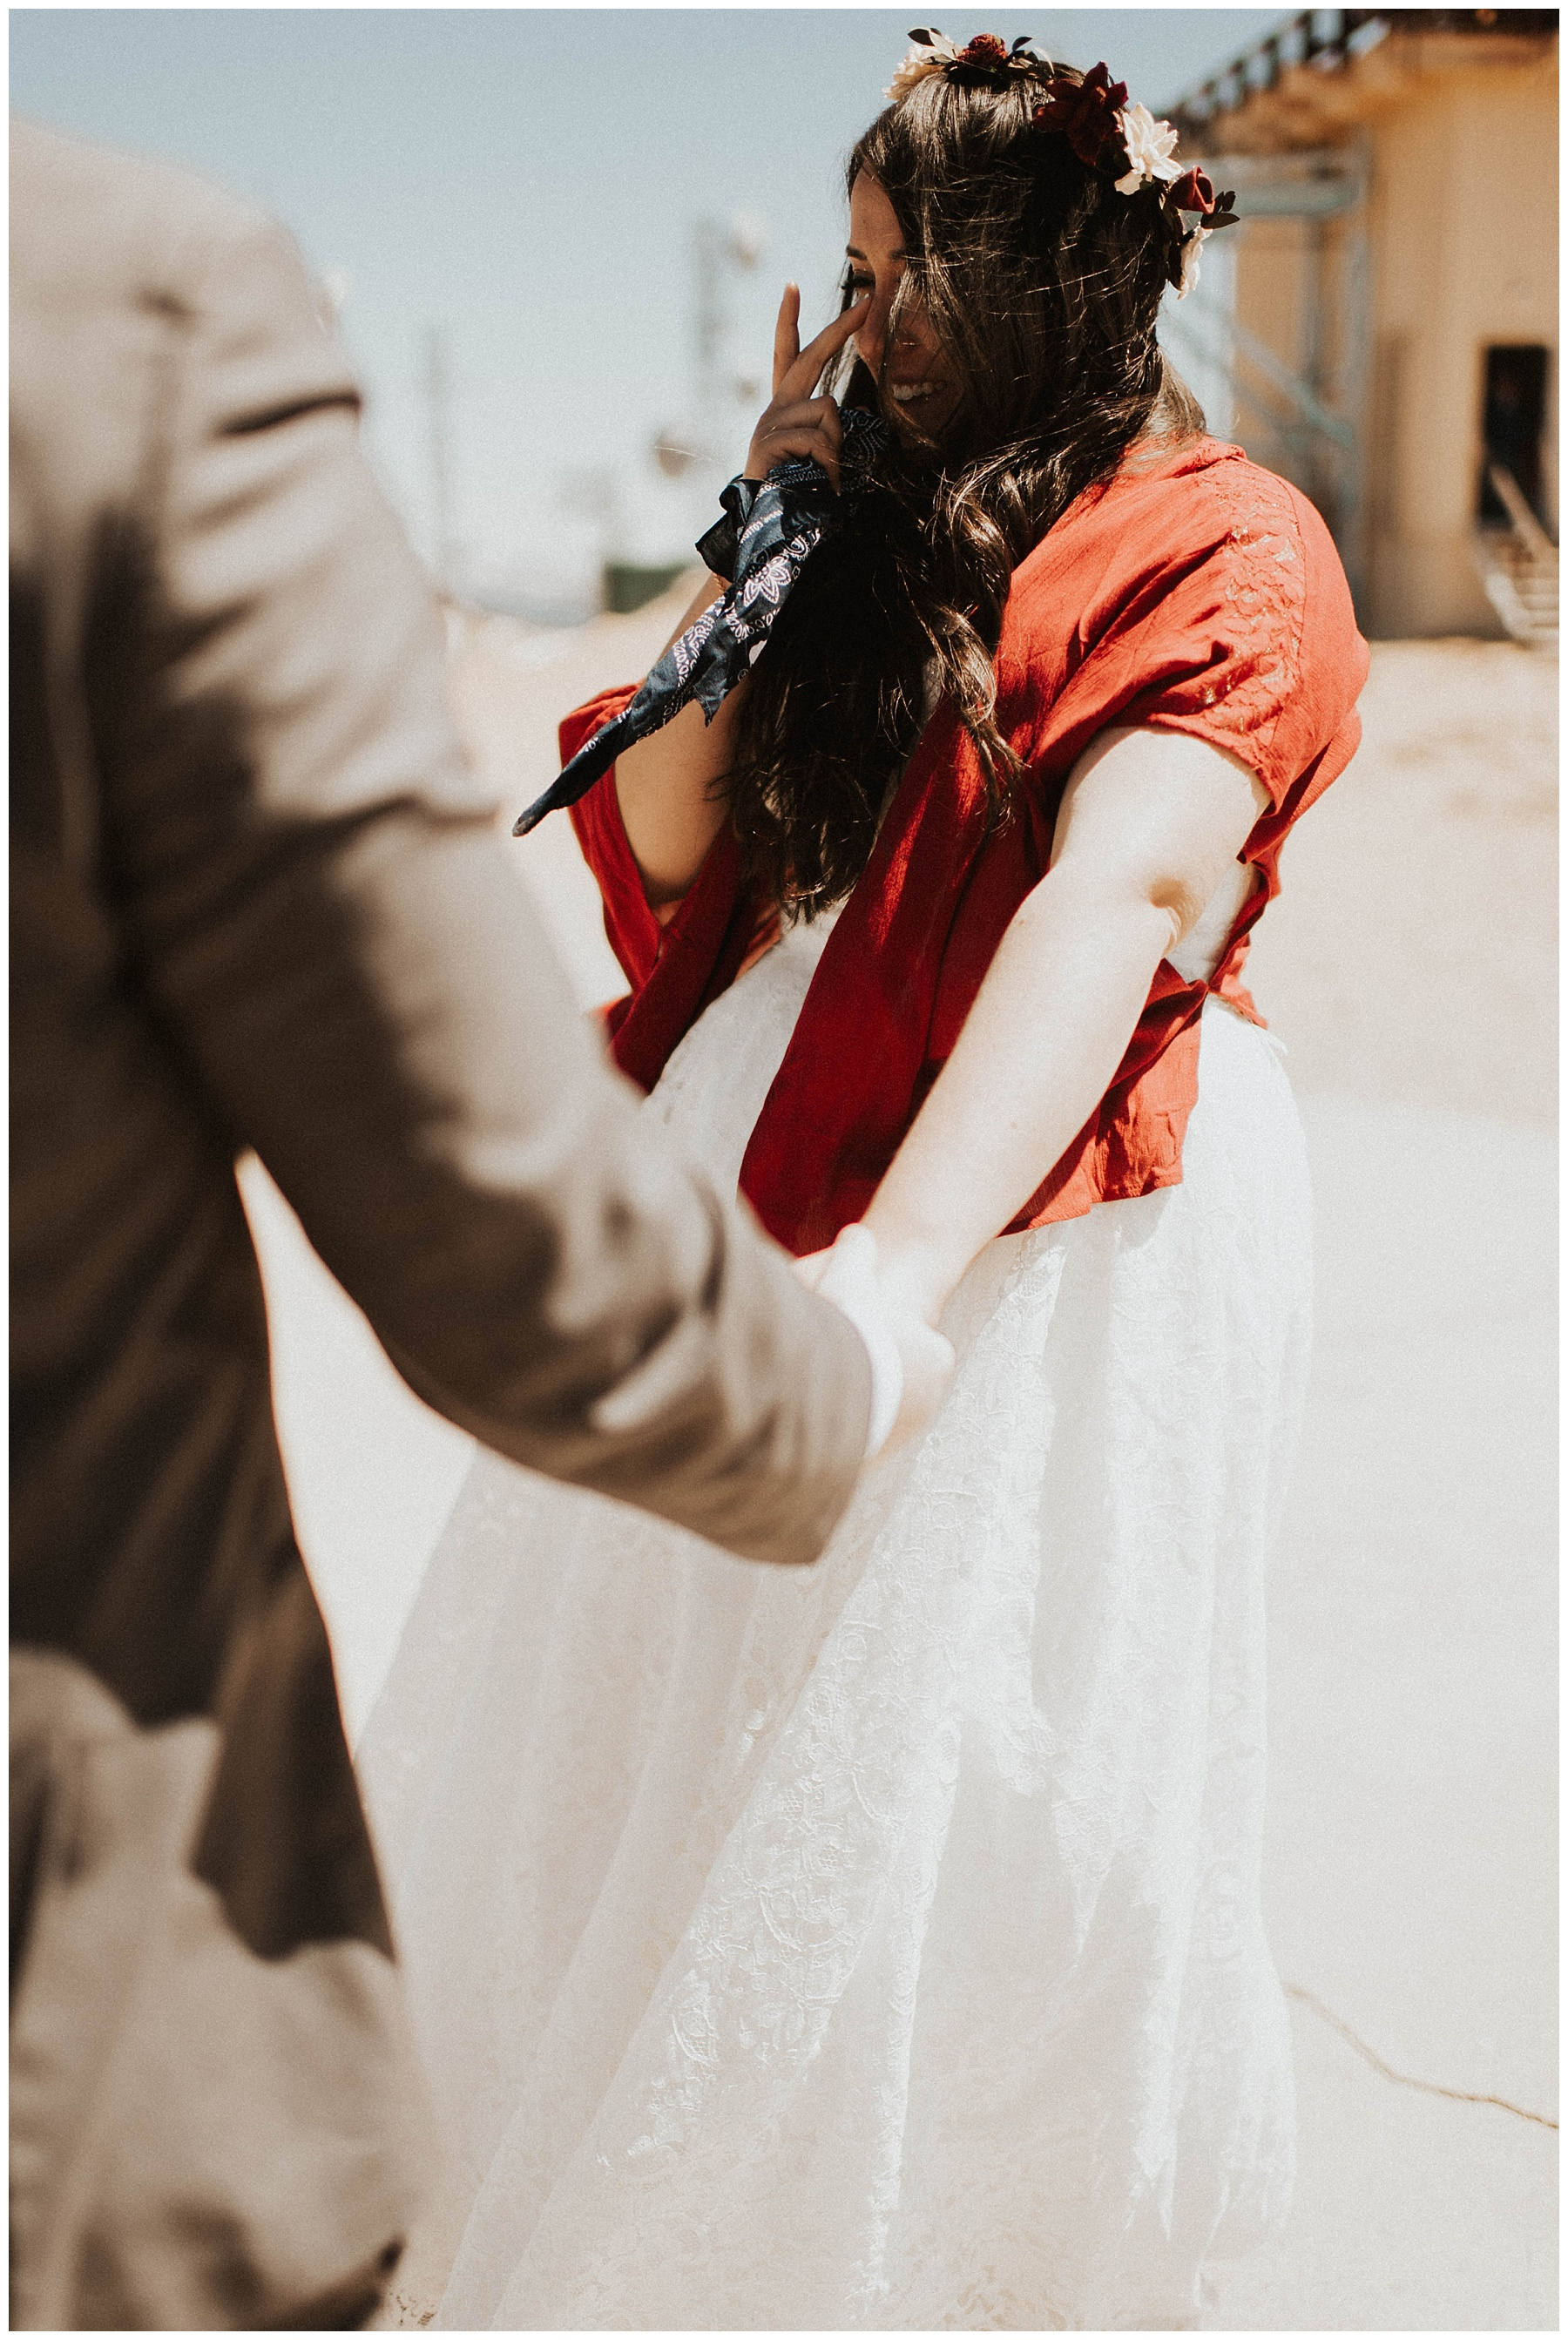 Ben + Lainee    Desert Colorado Wedding – Lauren F.otography a6b274183e3